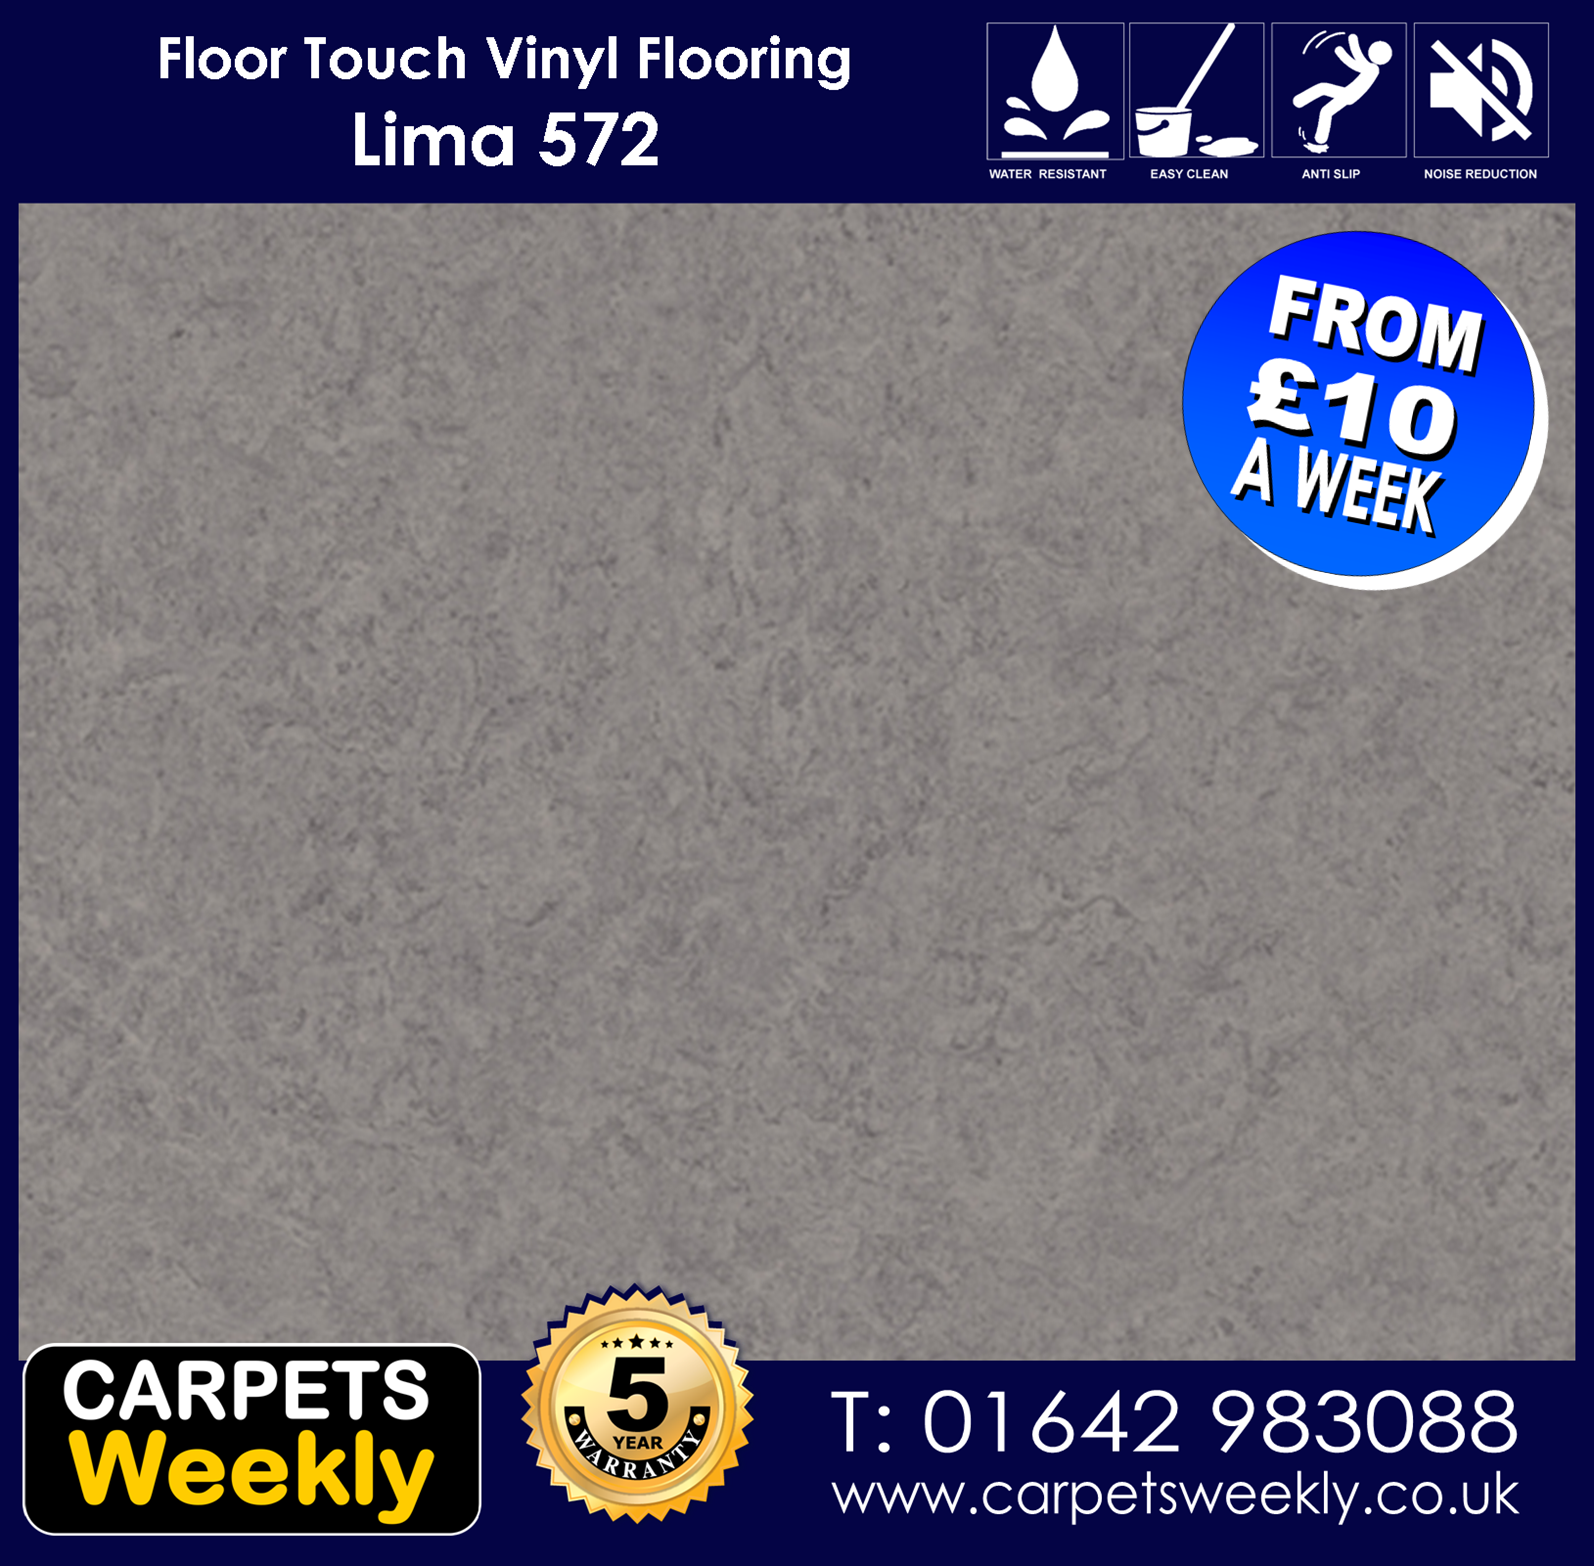 Lima 572 Vinyl Flooring by Floor Touch from Carpets Weekly